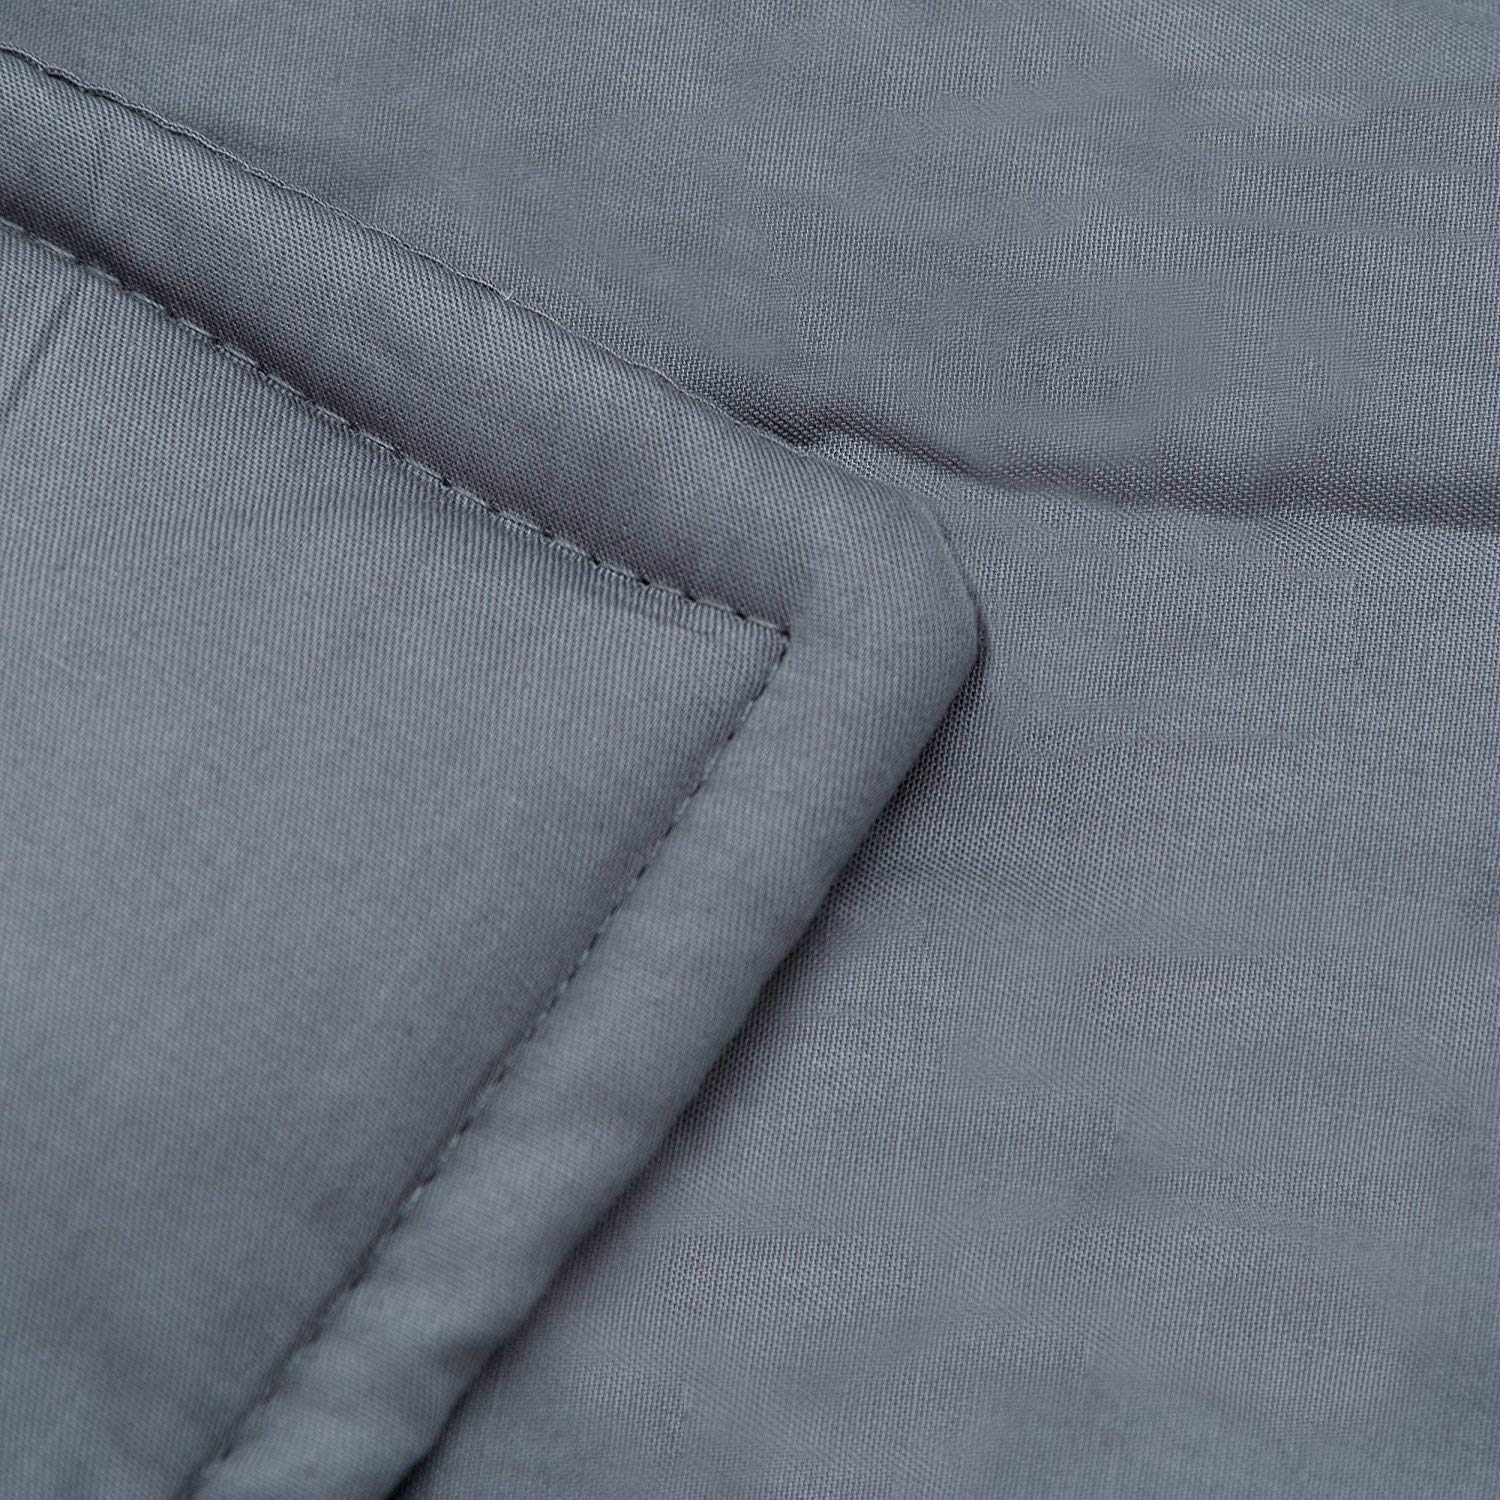 Sivio Weighted Blanket (48'' x 72'', 12lbs for 90-100lb Individual, Grey) for Kids | 100% Cotton Material with Glass Beads | Great for Relaxing by Sivio (Image #4)